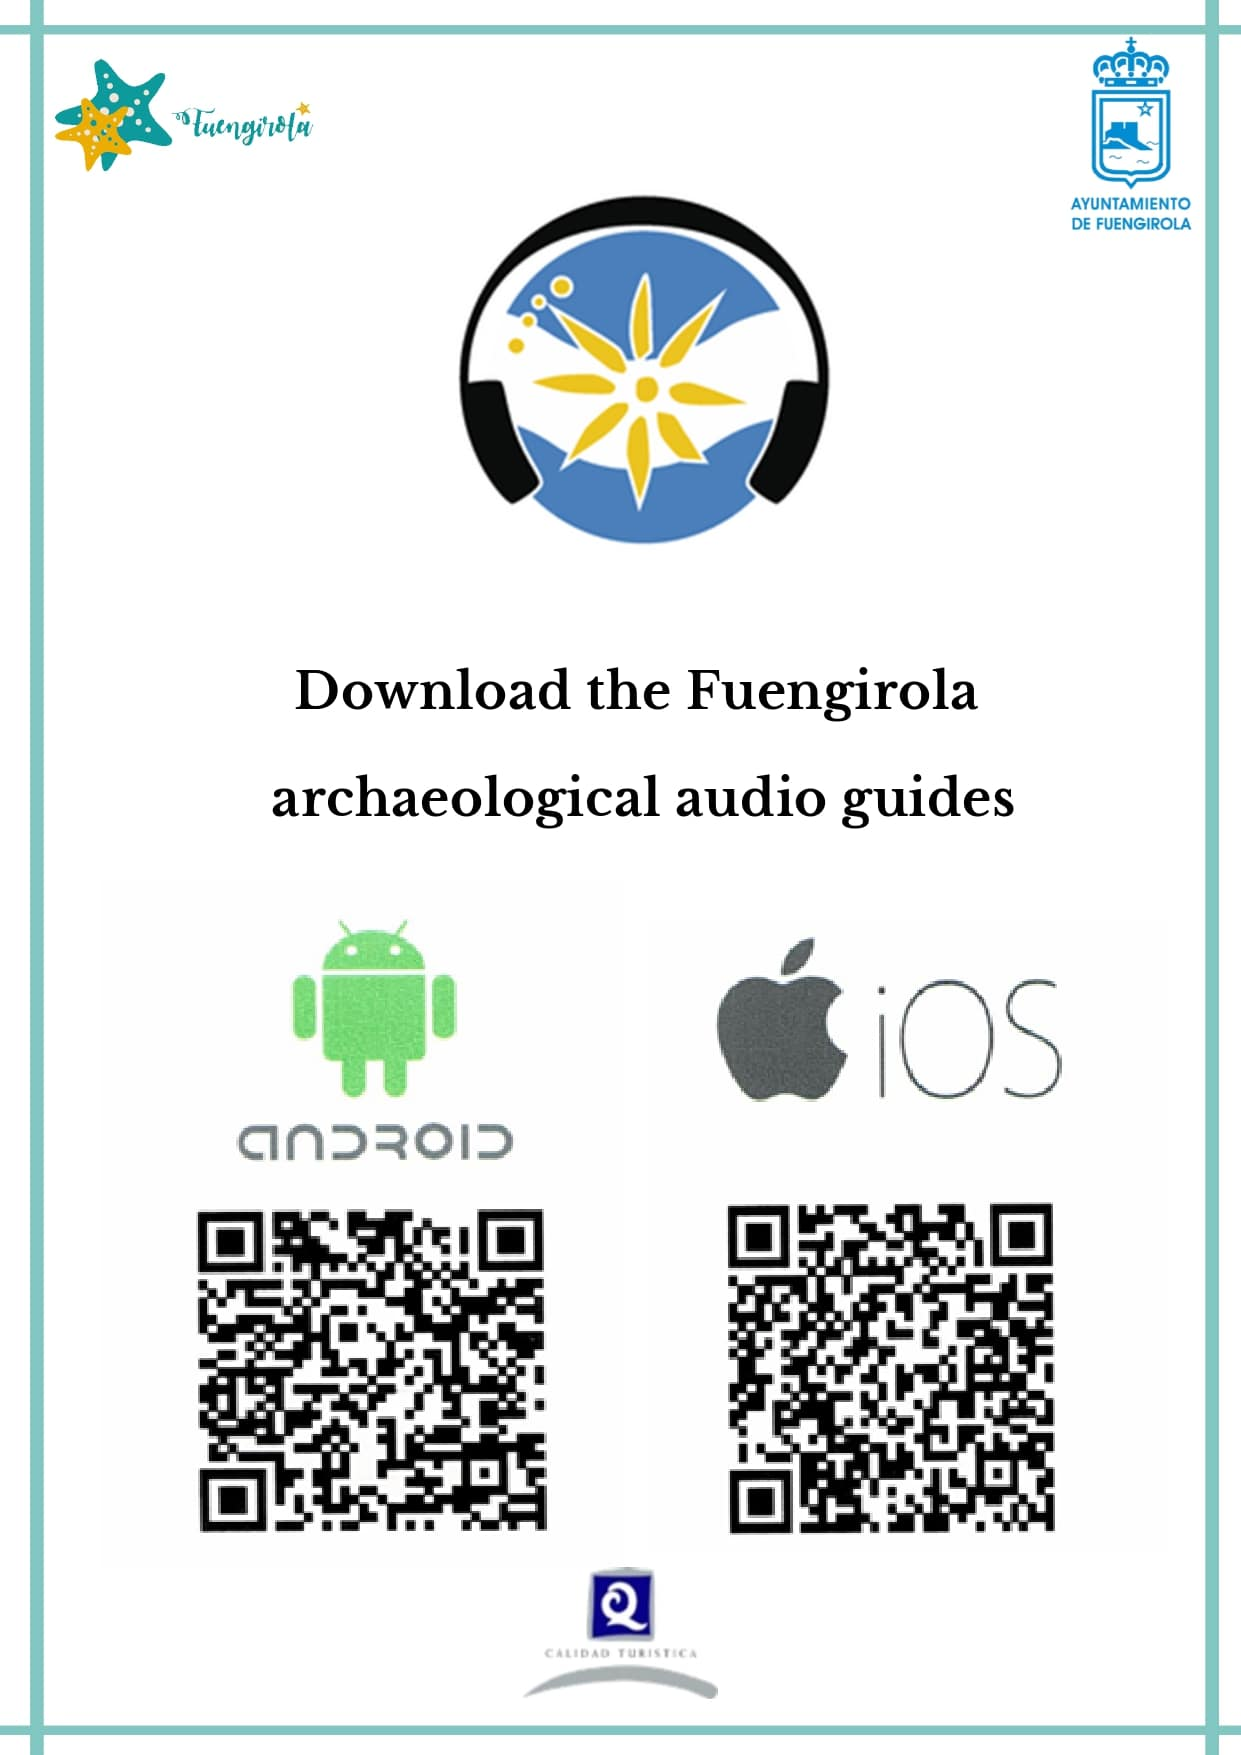 Download the Fuengirola Archaelogical audio guides_web-comp